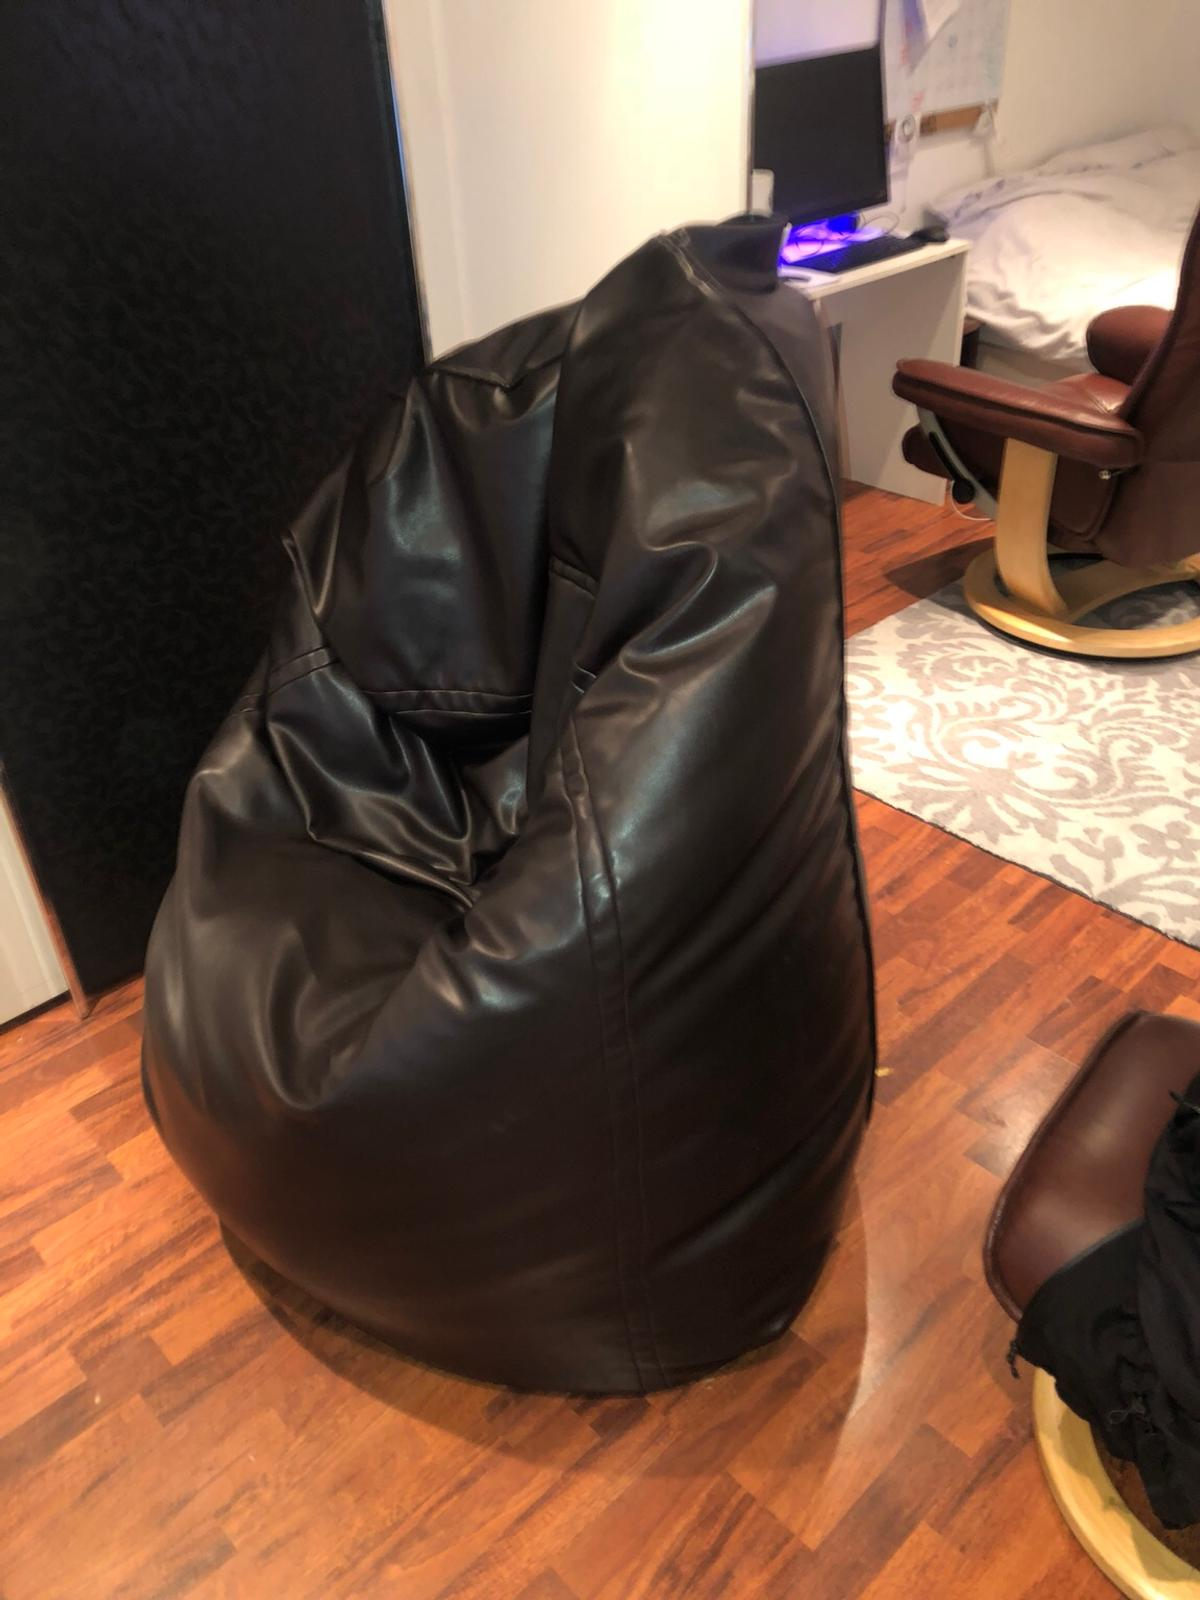 Groovy Large Bean Bag Dark Brown Leather Caraccident5 Cool Chair Designs And Ideas Caraccident5Info